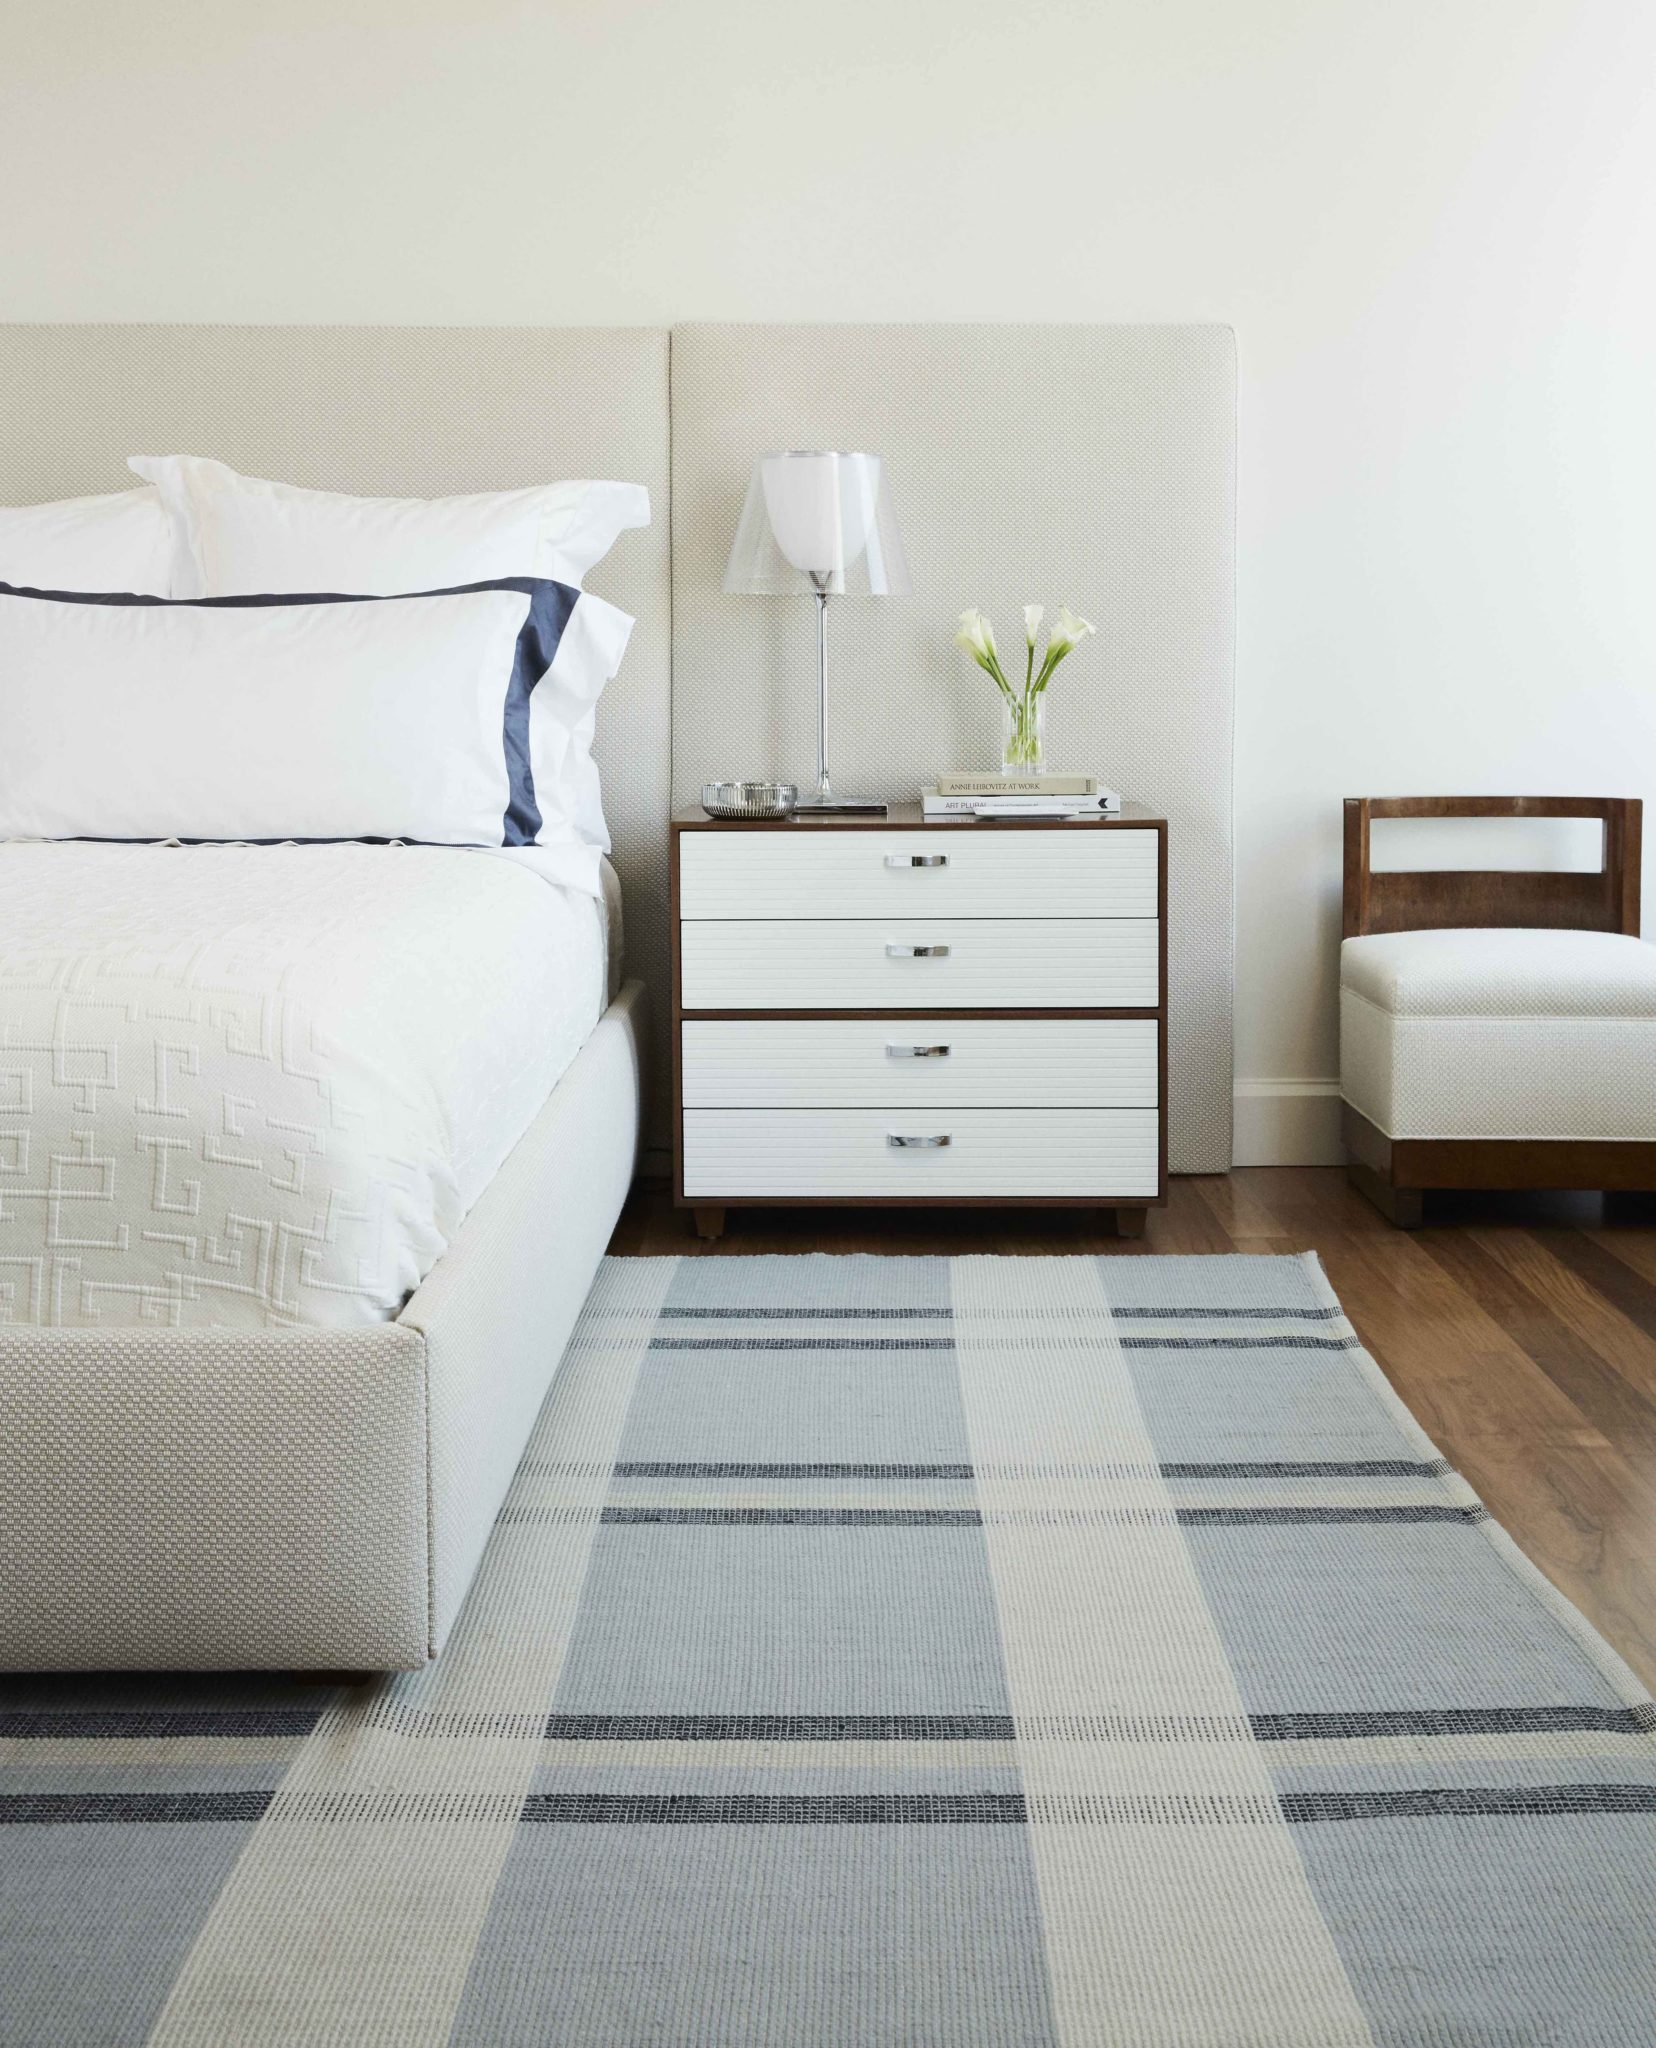 West Los Angeles Residence, Elongated Headboard and Plaid Area Rug by Sherwood Kypreos